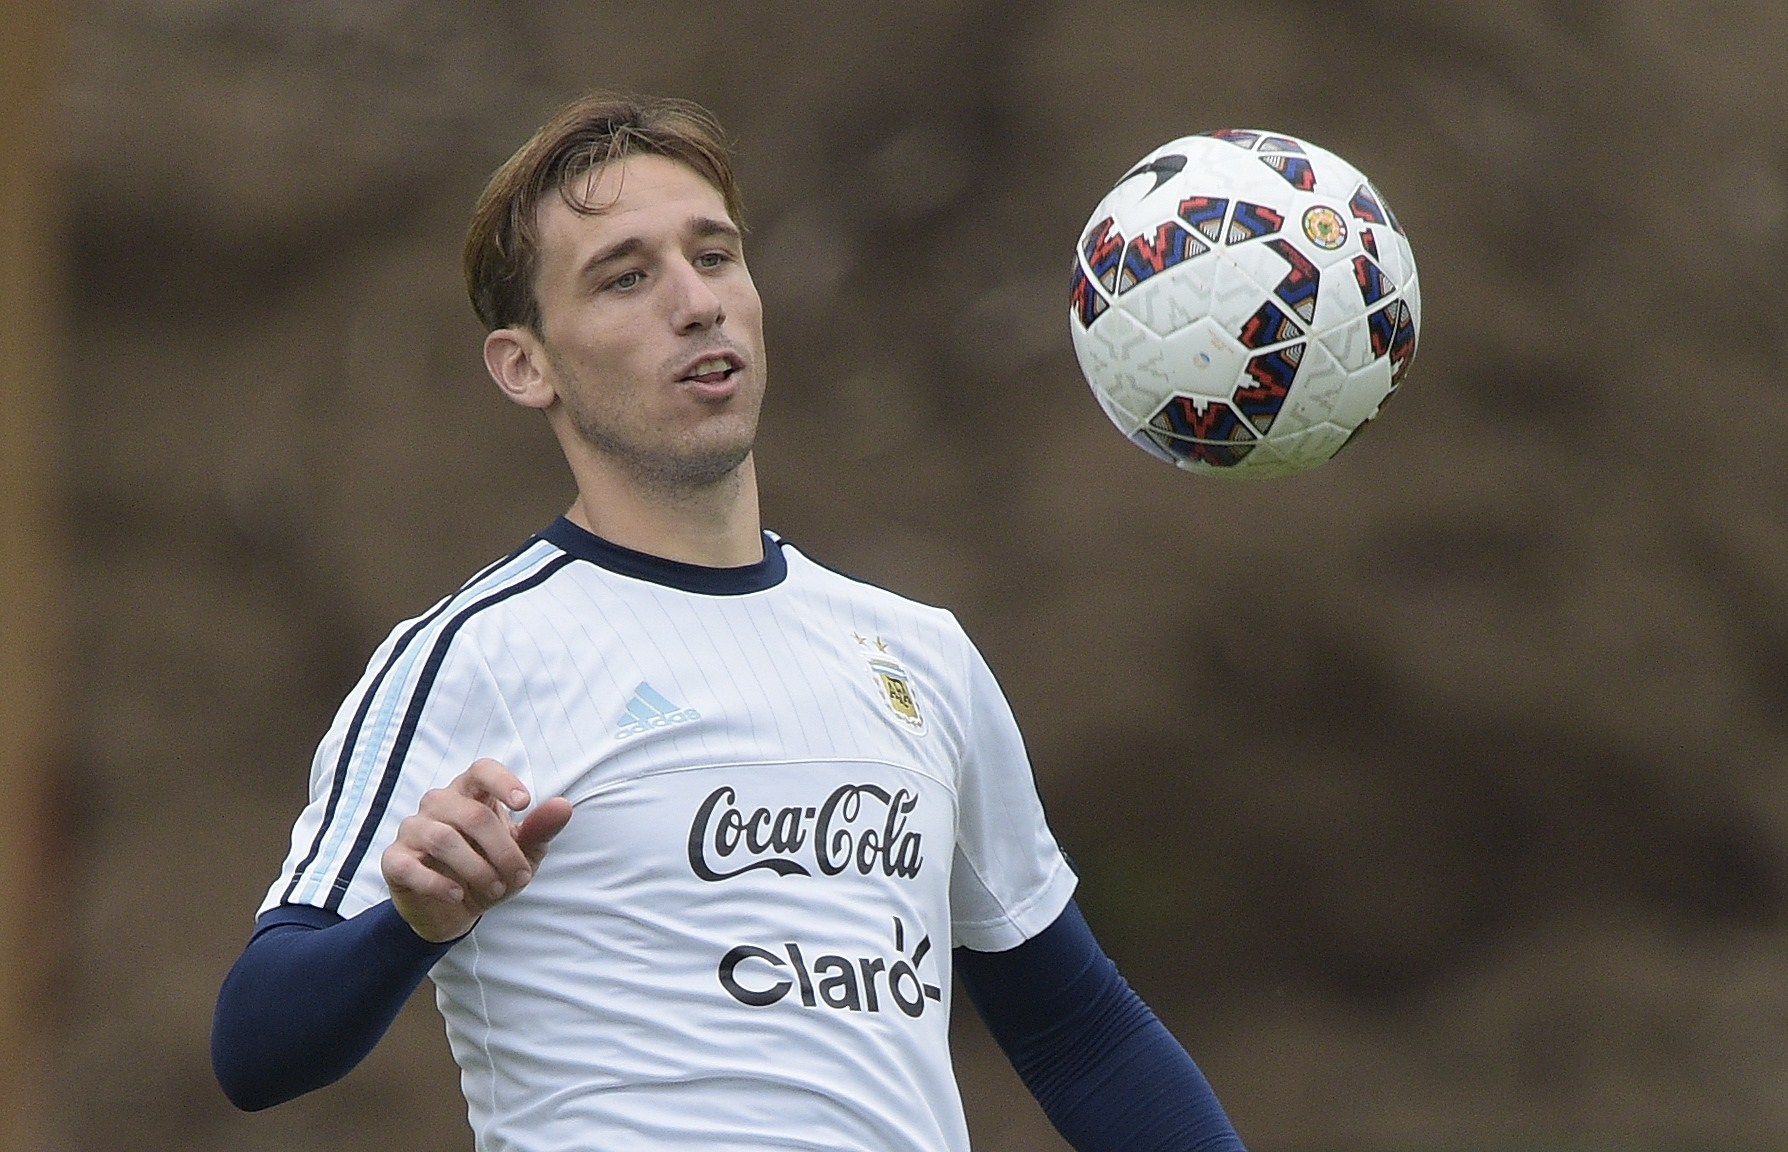 Manchester United 'making £18.6m transfer offer to sign Lucas Biglia'